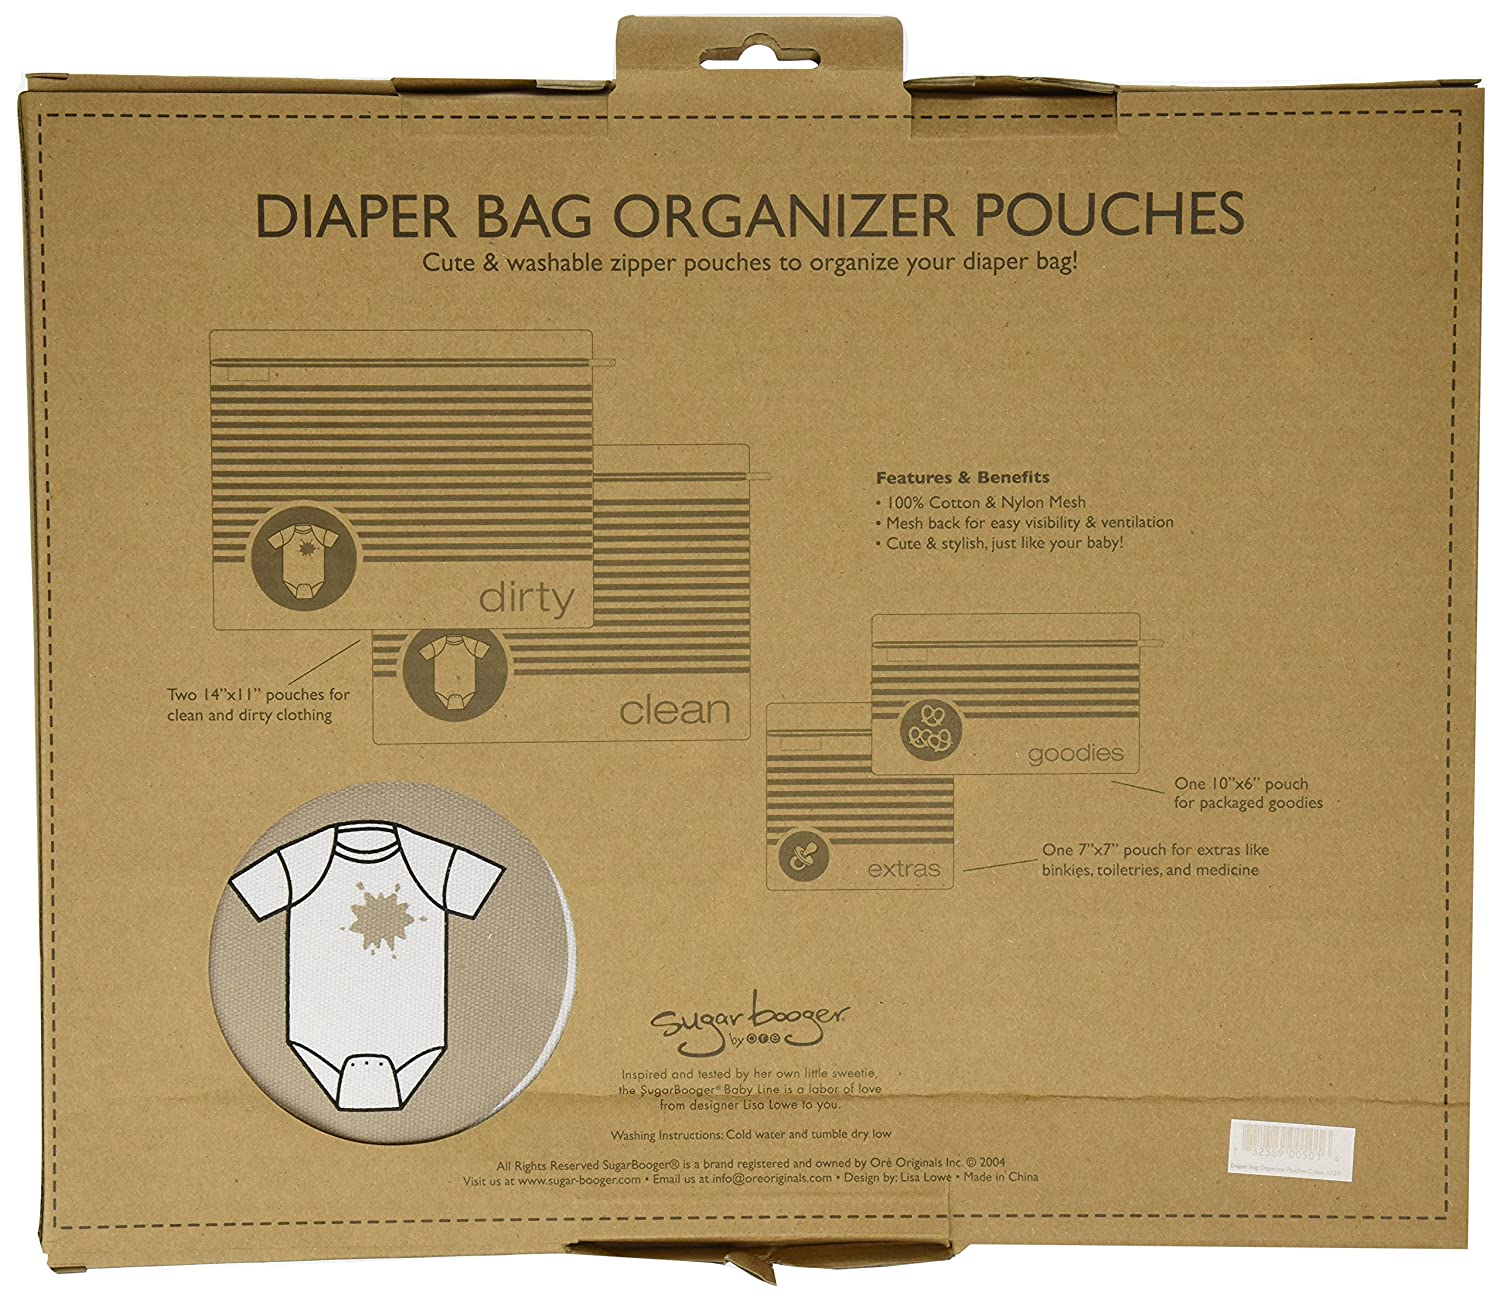 Amazon.com : Sugarbooger Diaper Bag Organizer Pouches : Diaper ...